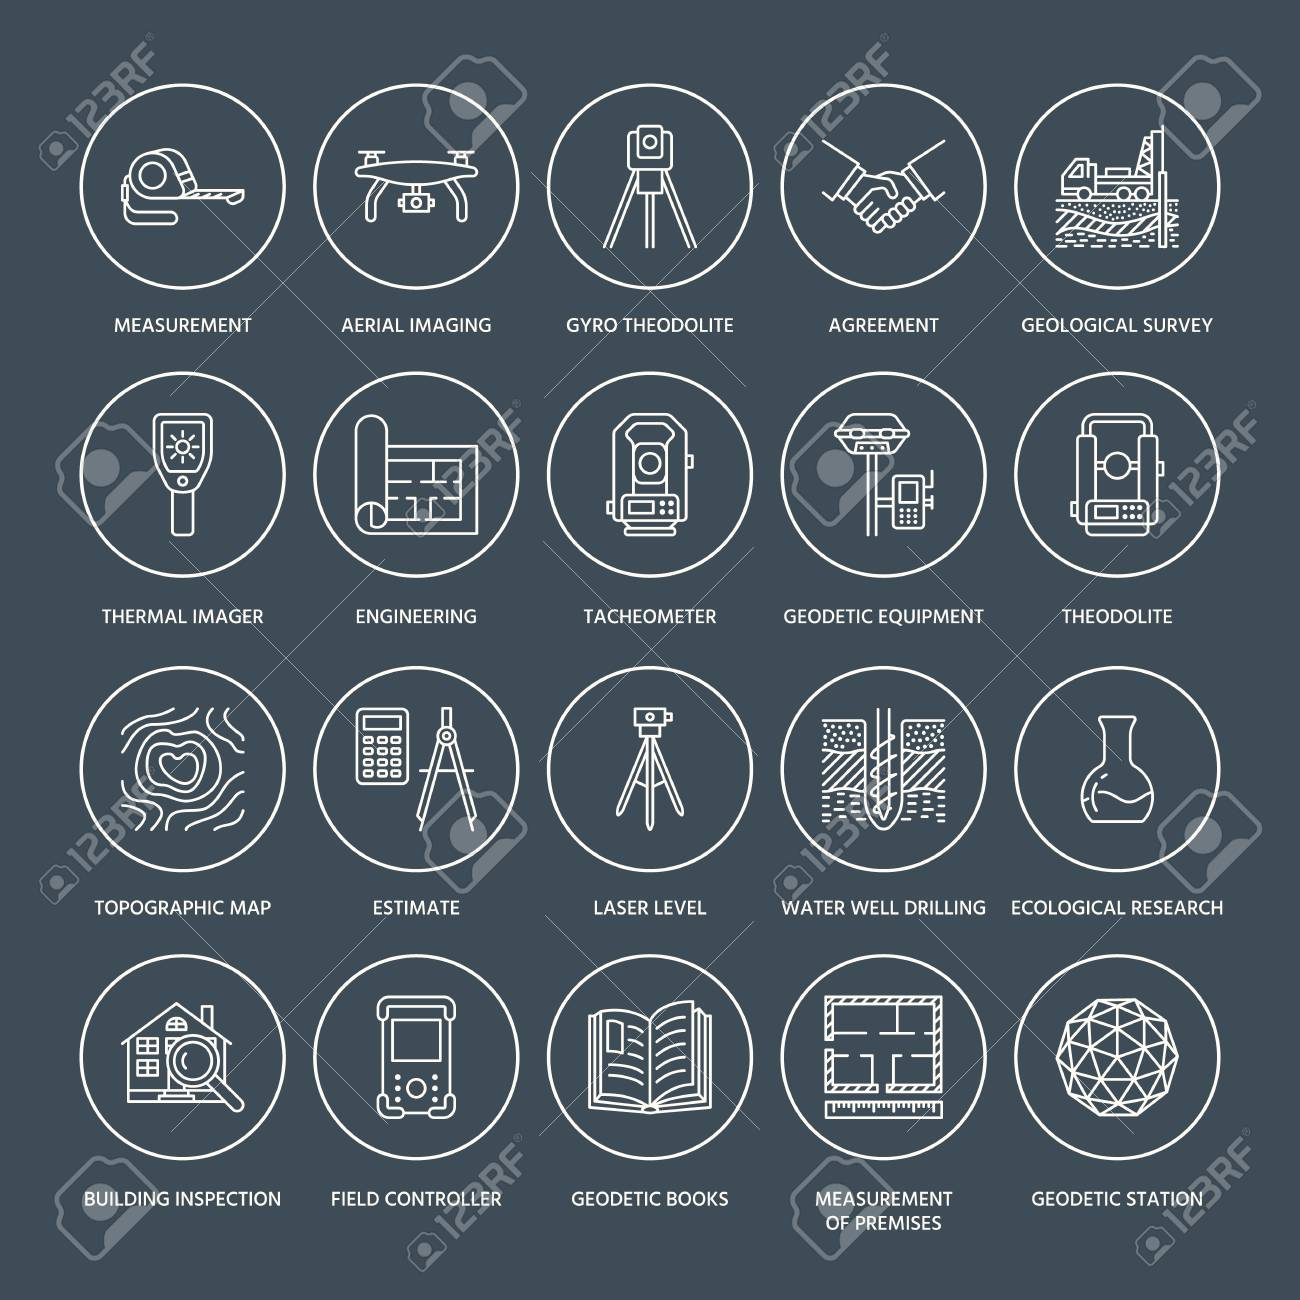 Geodetic survey engineering vector flat line icons. Geodesy equipment, tacheometer, theodolite, tripod. Geological research, building measurement inspection illustration. Construction service signs. - 87889351